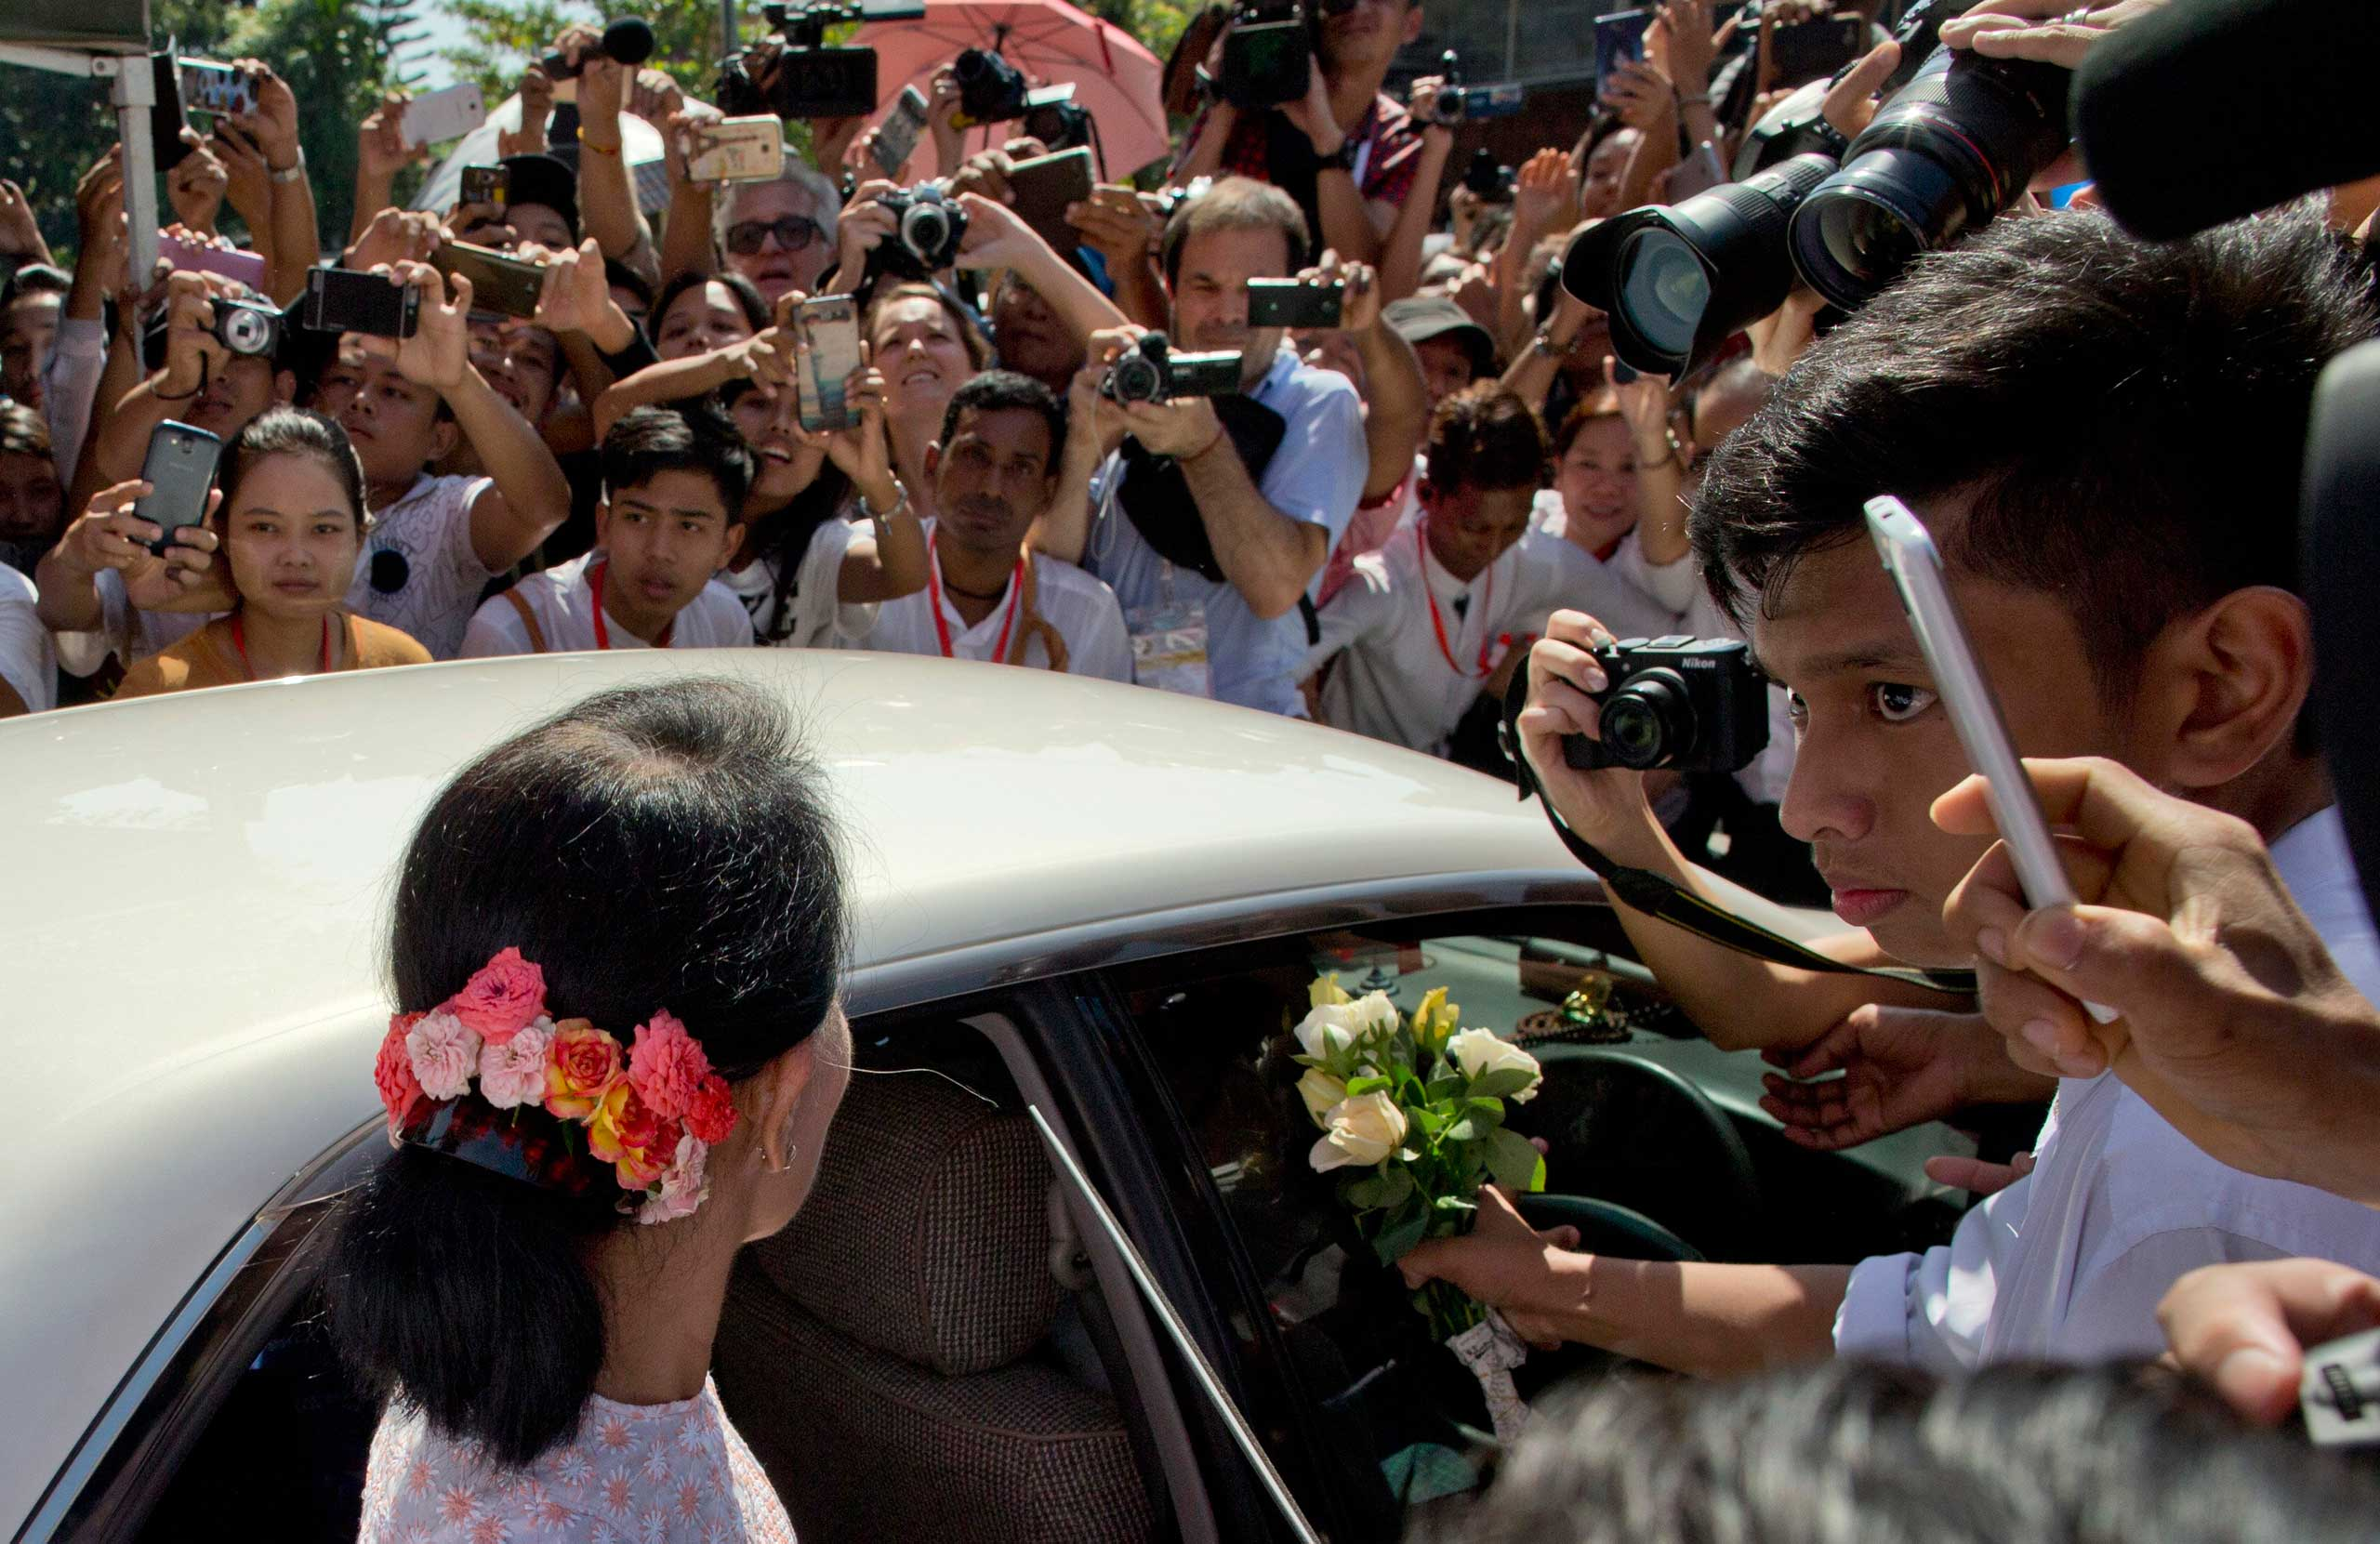 Aung San Suu Kyi with flowers in her hair, leaves after delivering a speech in Rangoon, Burma, on Nov. 9, 2015.